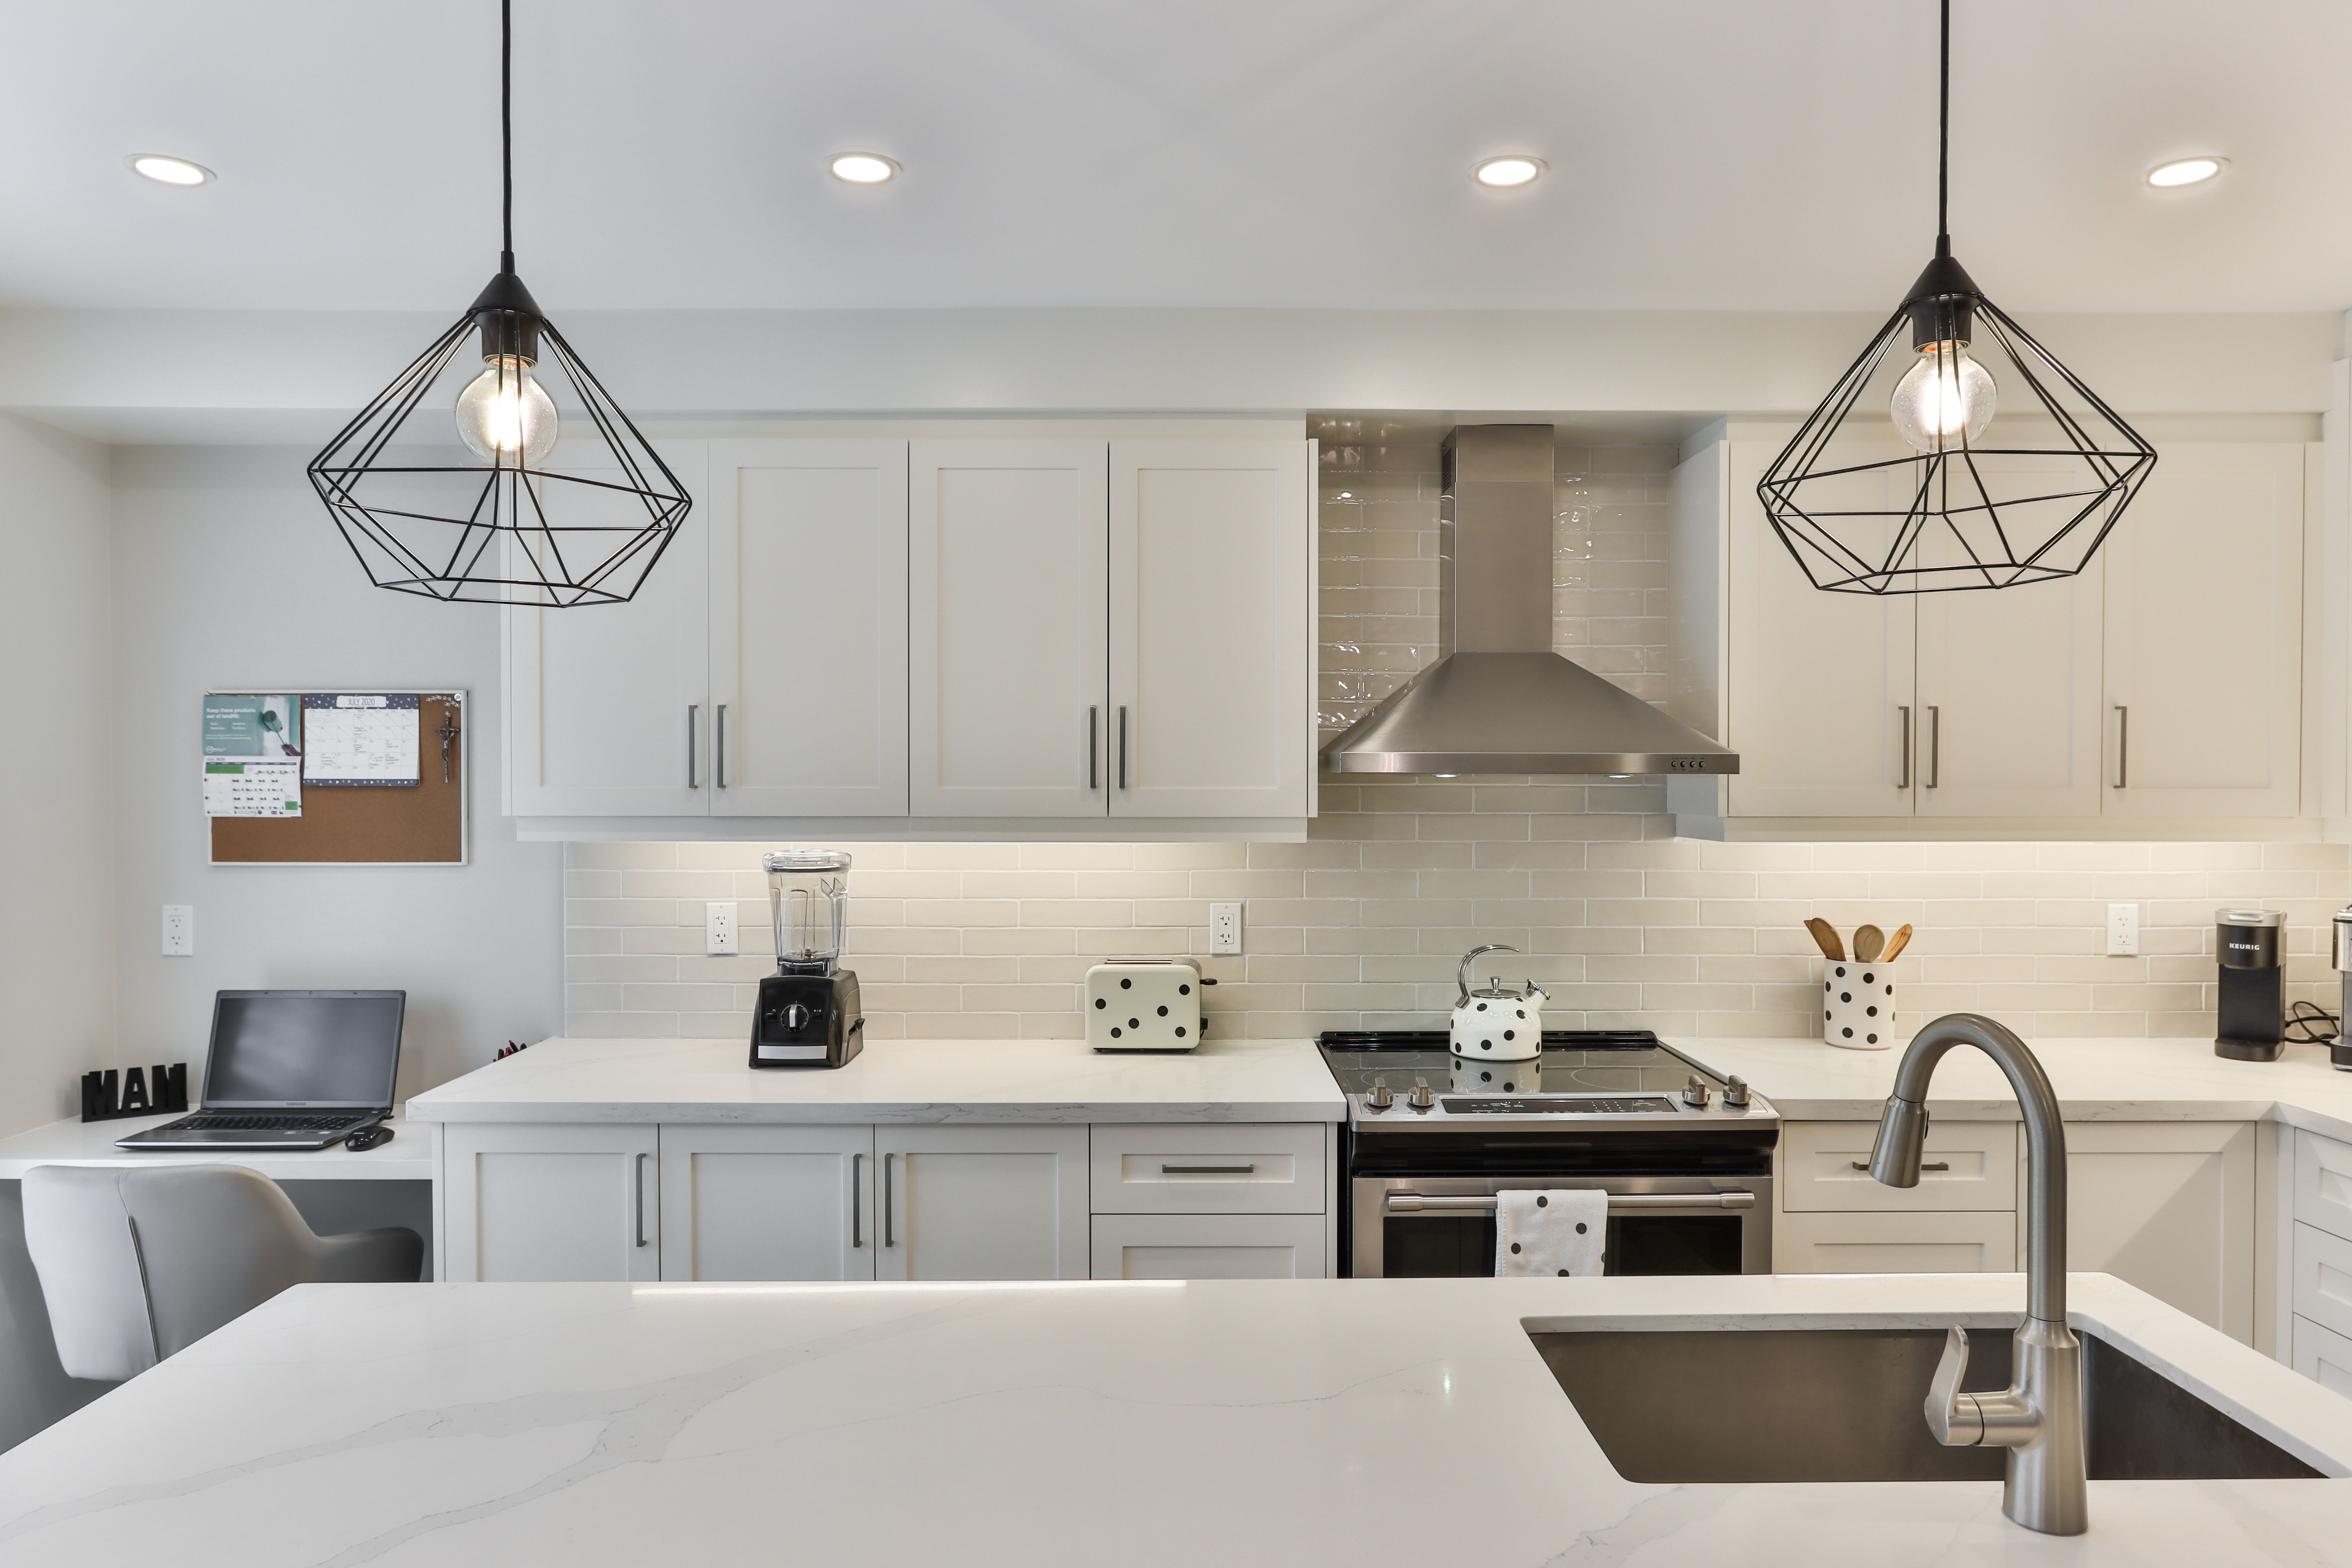 Why are white subway tiles for the kitchen a good option?